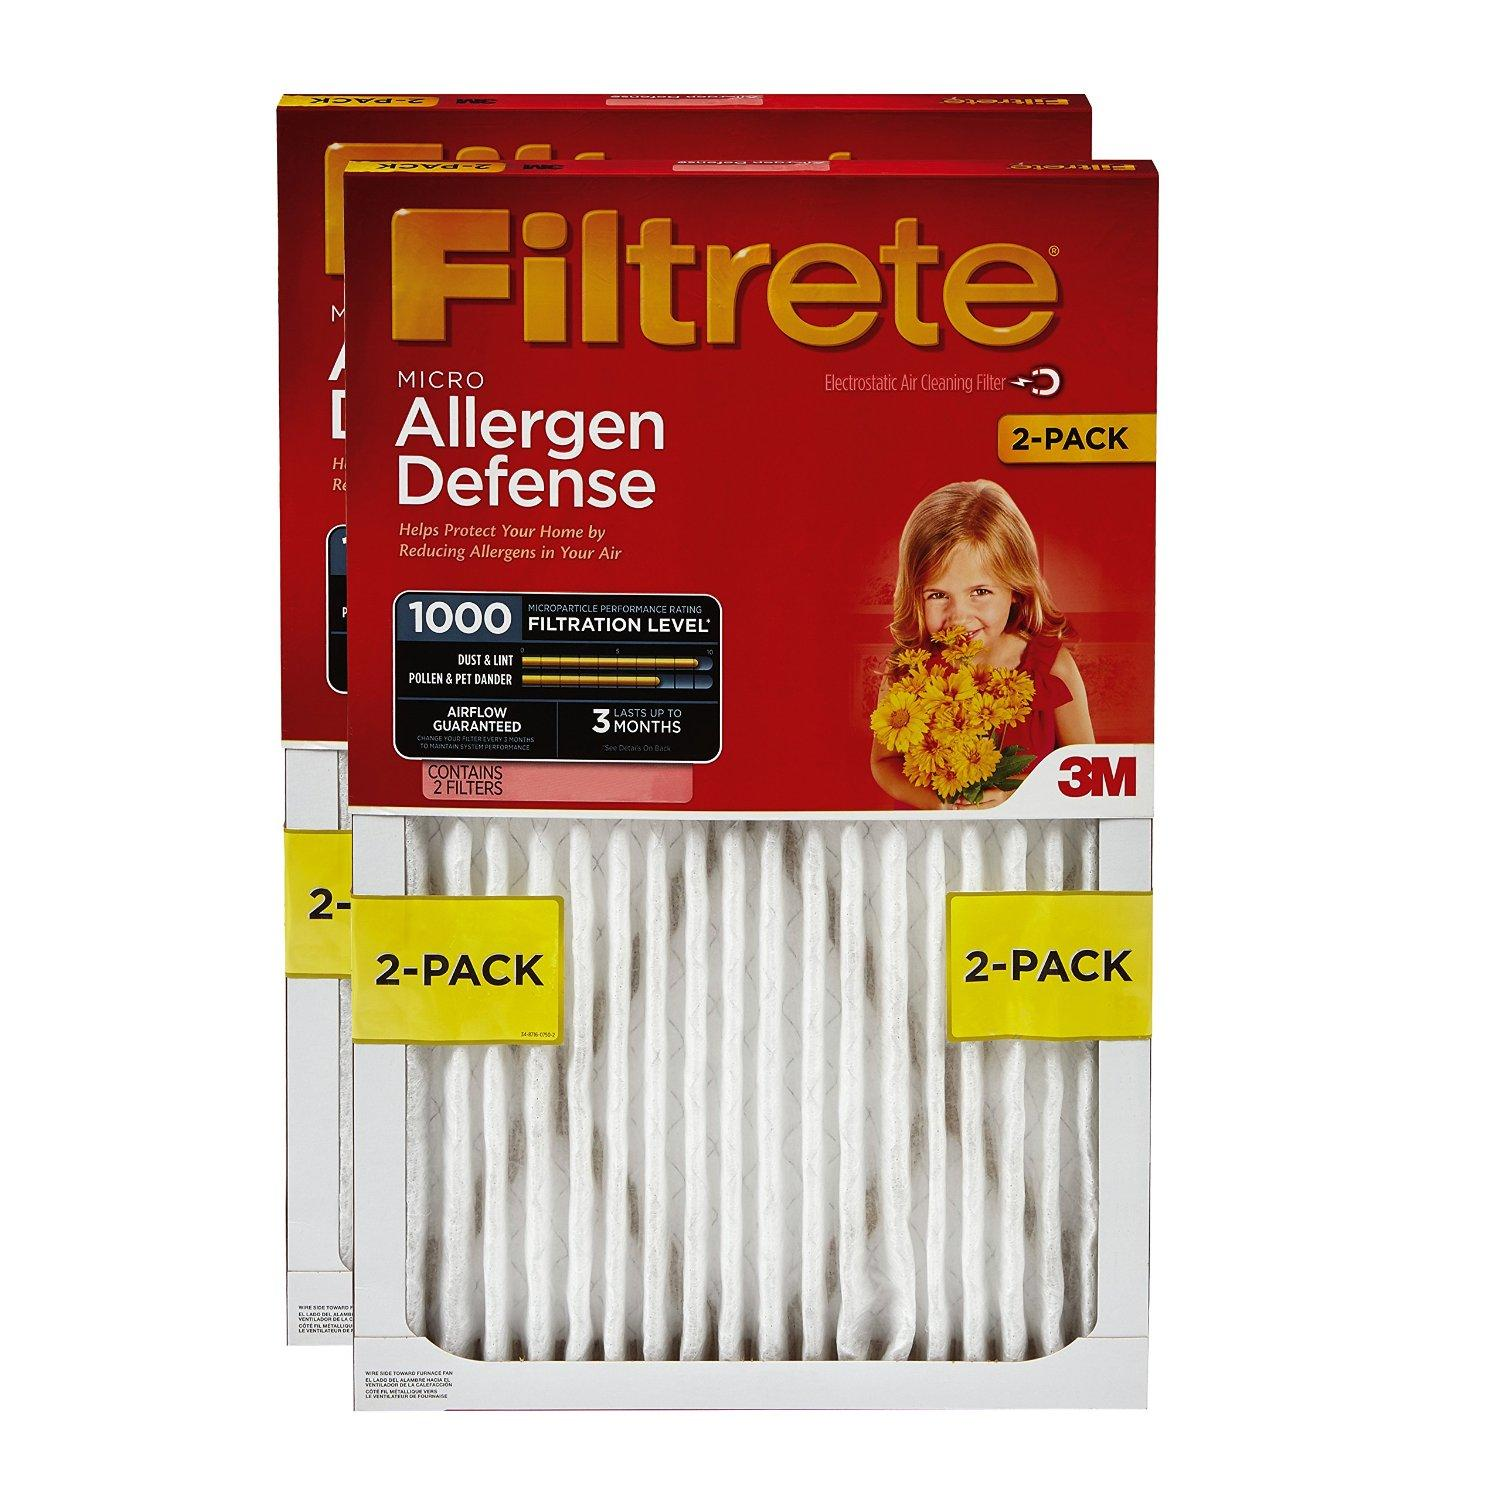 Up to 50% Off Select 3M Filtrete Home Filters @ Amazon.com